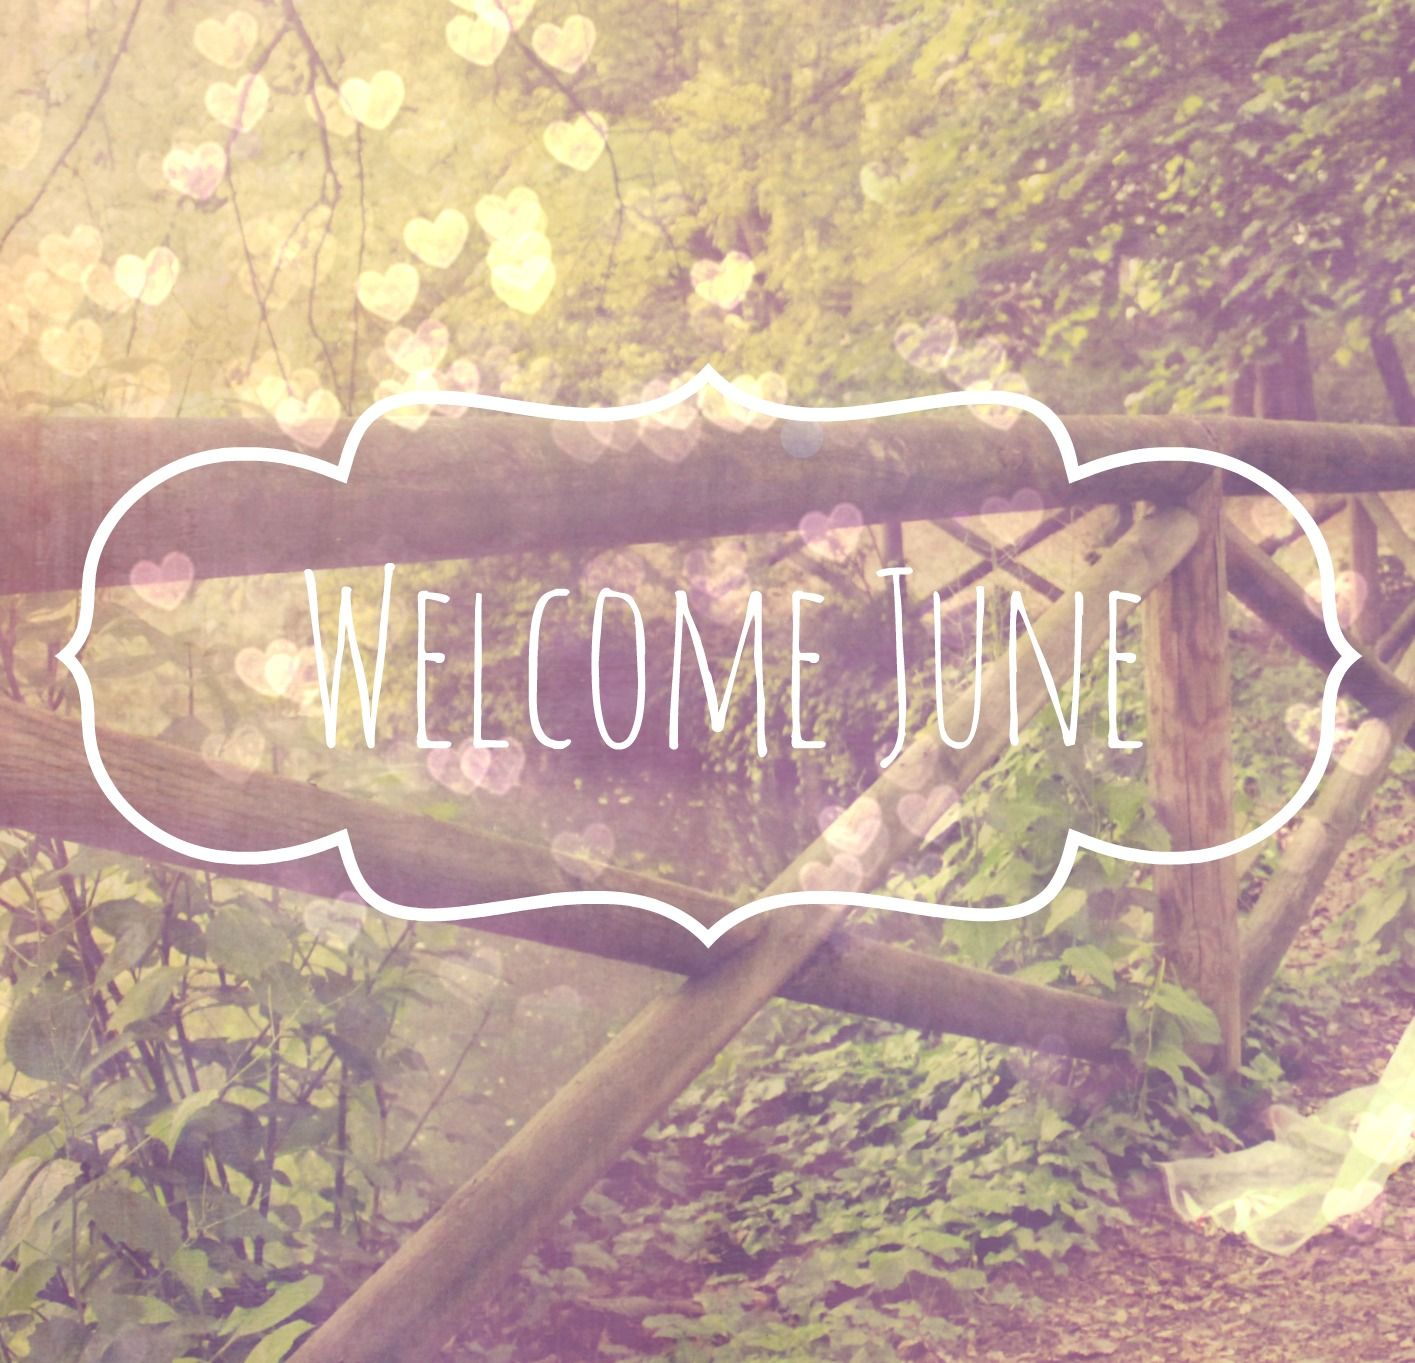 June Welcome quotes pictures best photo